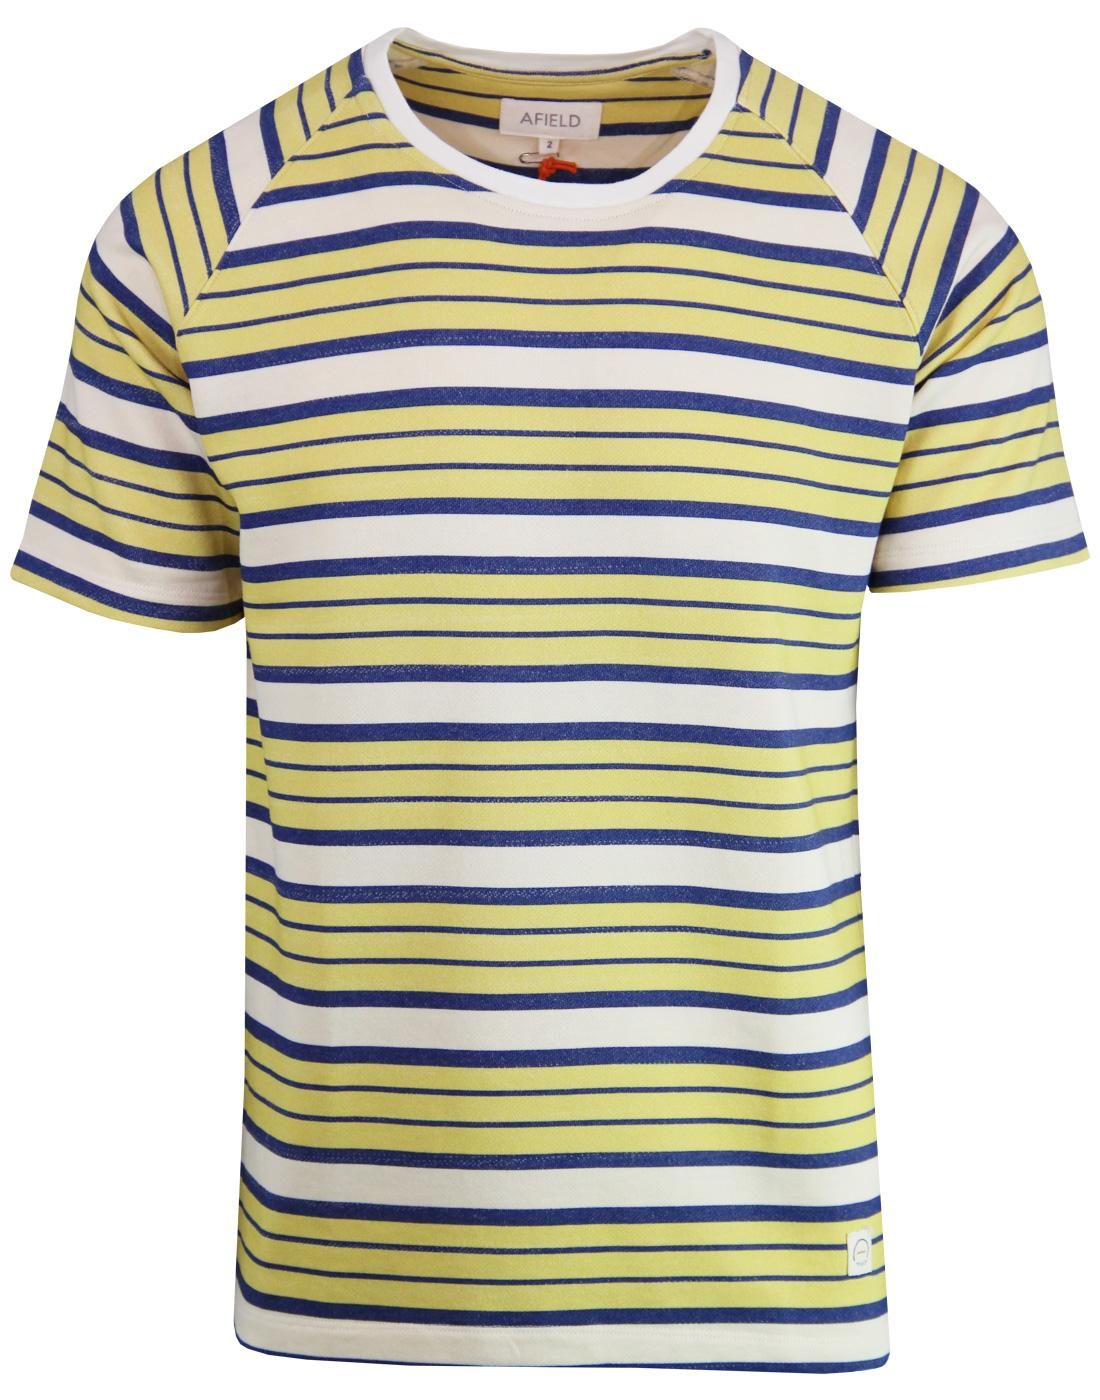 AFIELD Soy Retro 1970s French Terry Stripe T-shirt